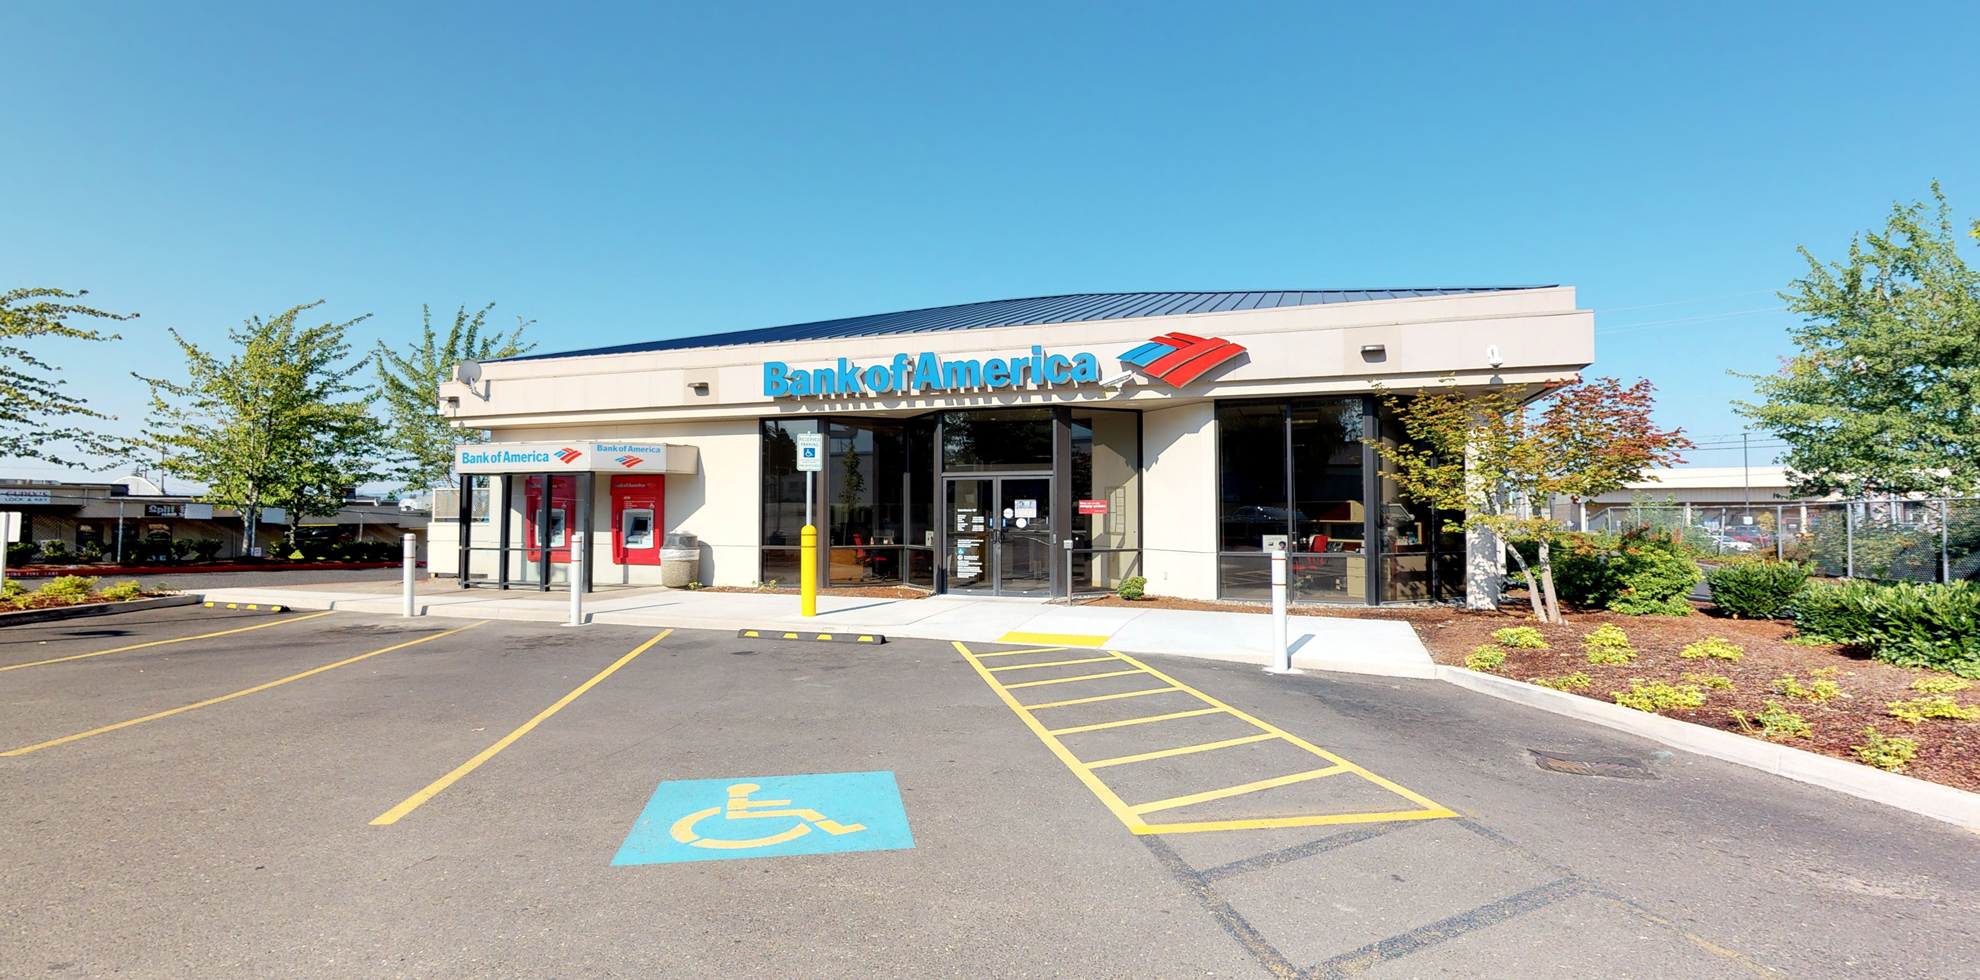 Bank of America financial center with drive-thru ATM   7407 NE Highway 99, Vancouver, WA 98665